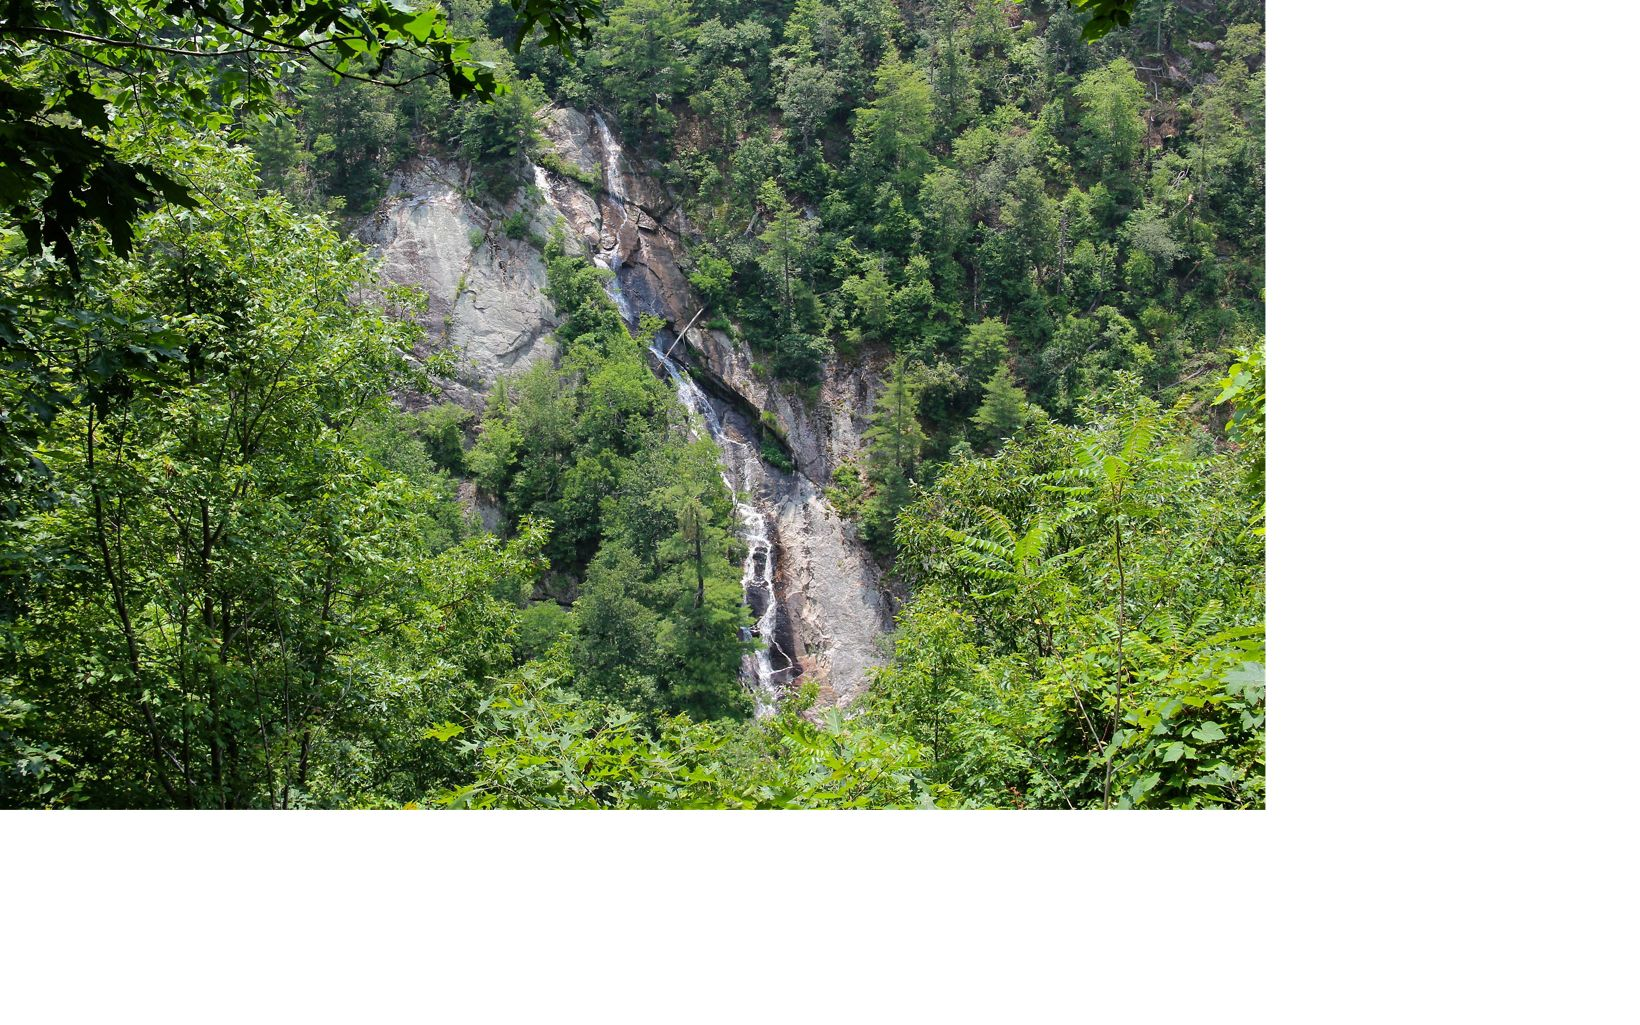 One of the head-water streams of the South Fork of the Roanoke River, Bottom Creek boasts a 200-foot high waterfall.